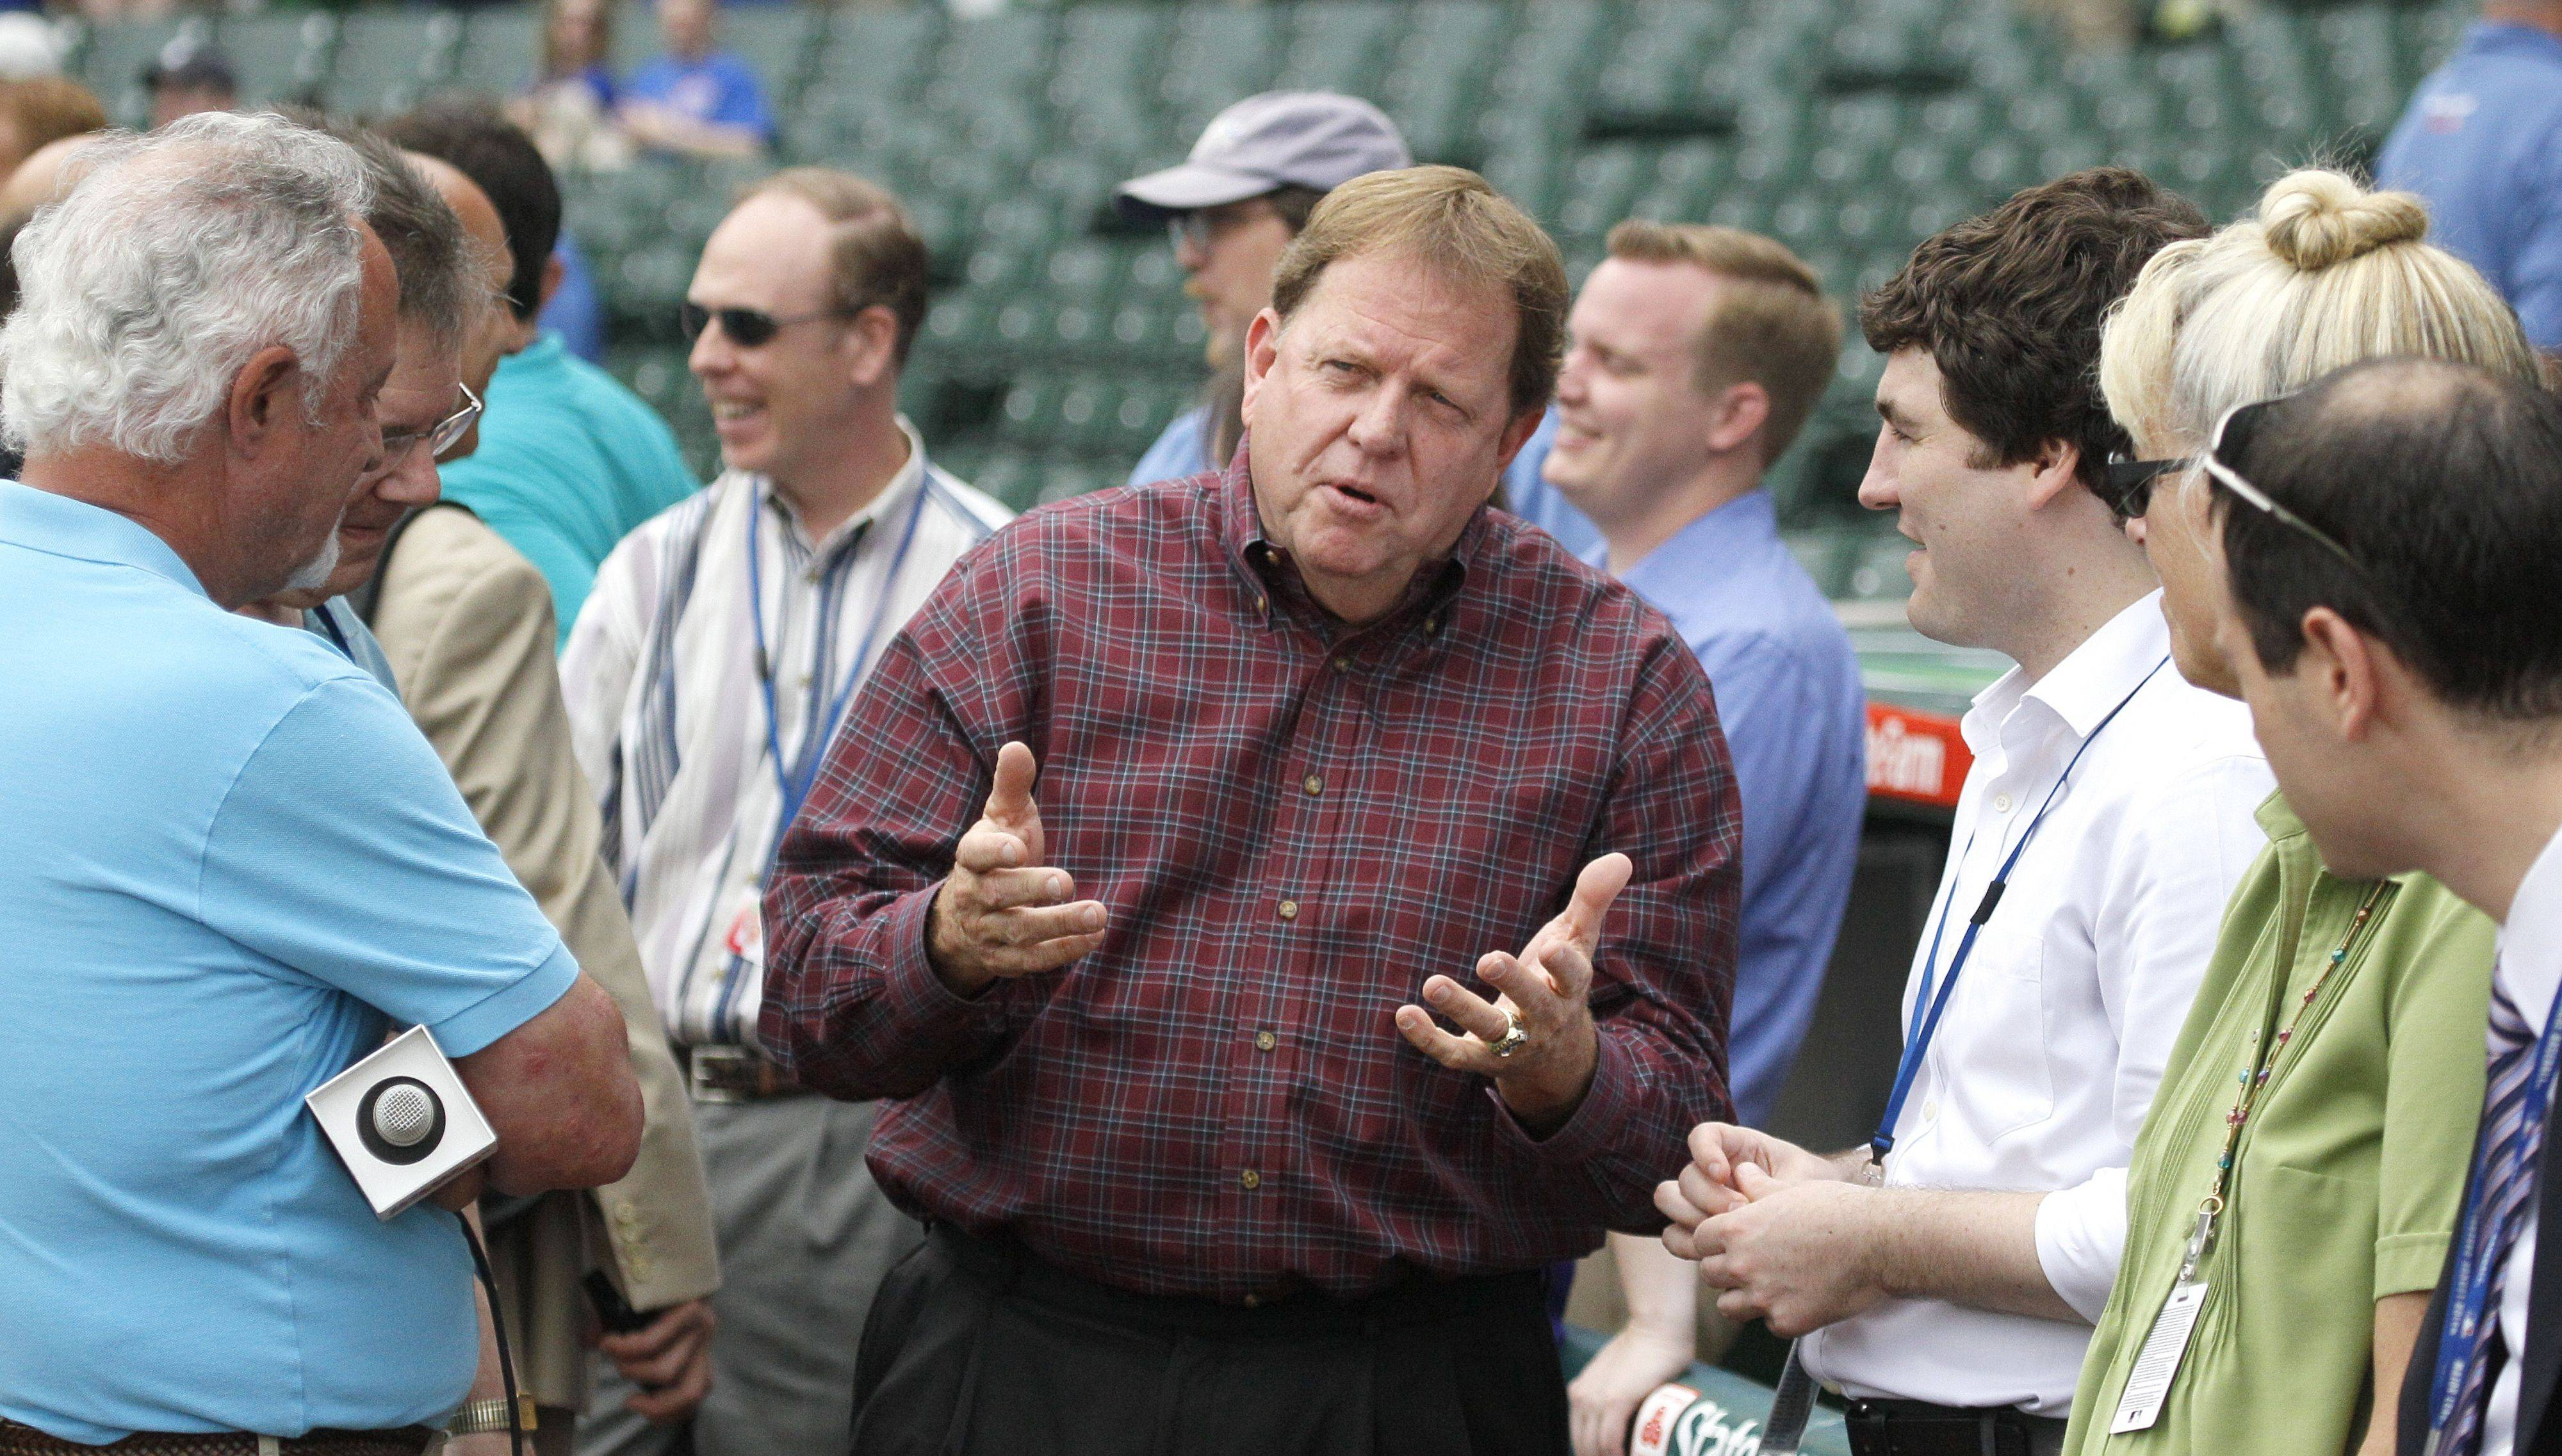 Cubs general manager Jim Hendry, center, who has been running the team since the 2003, is the focus of many Cubs fans who want a change in direction with the struggling club.